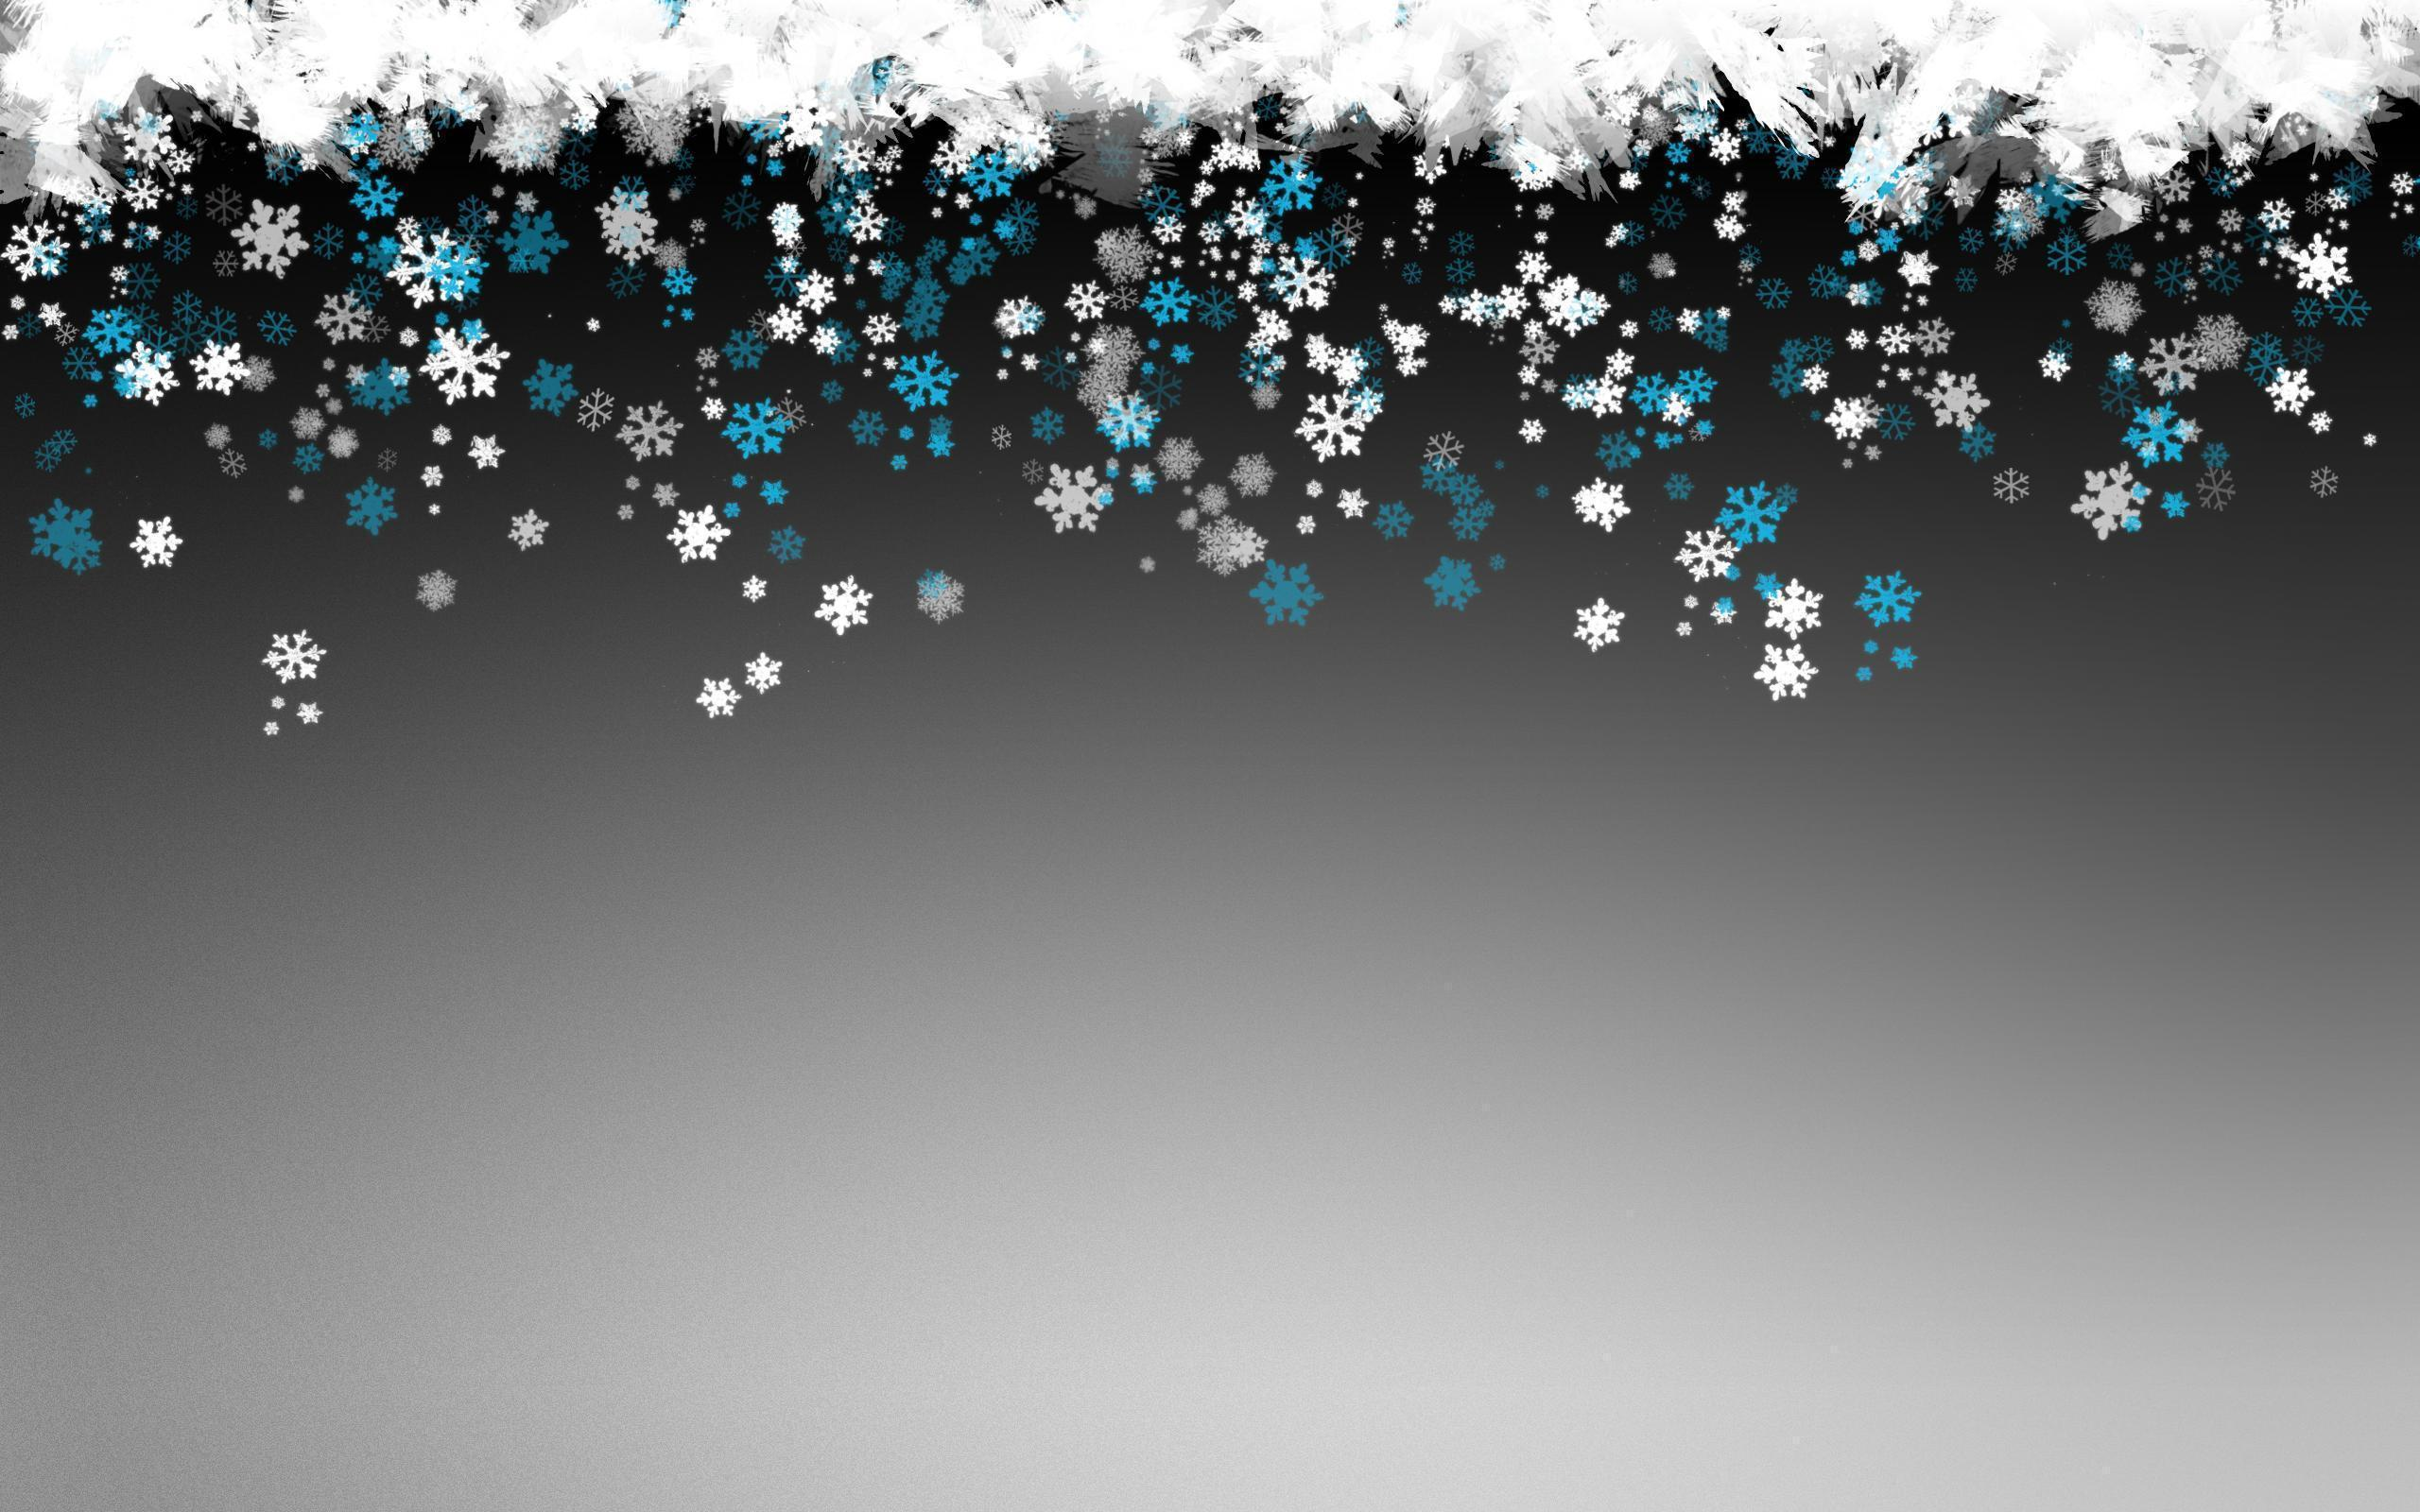 Snowflake wallpapers wallpaper cave for Holiday themed facebook cover photos